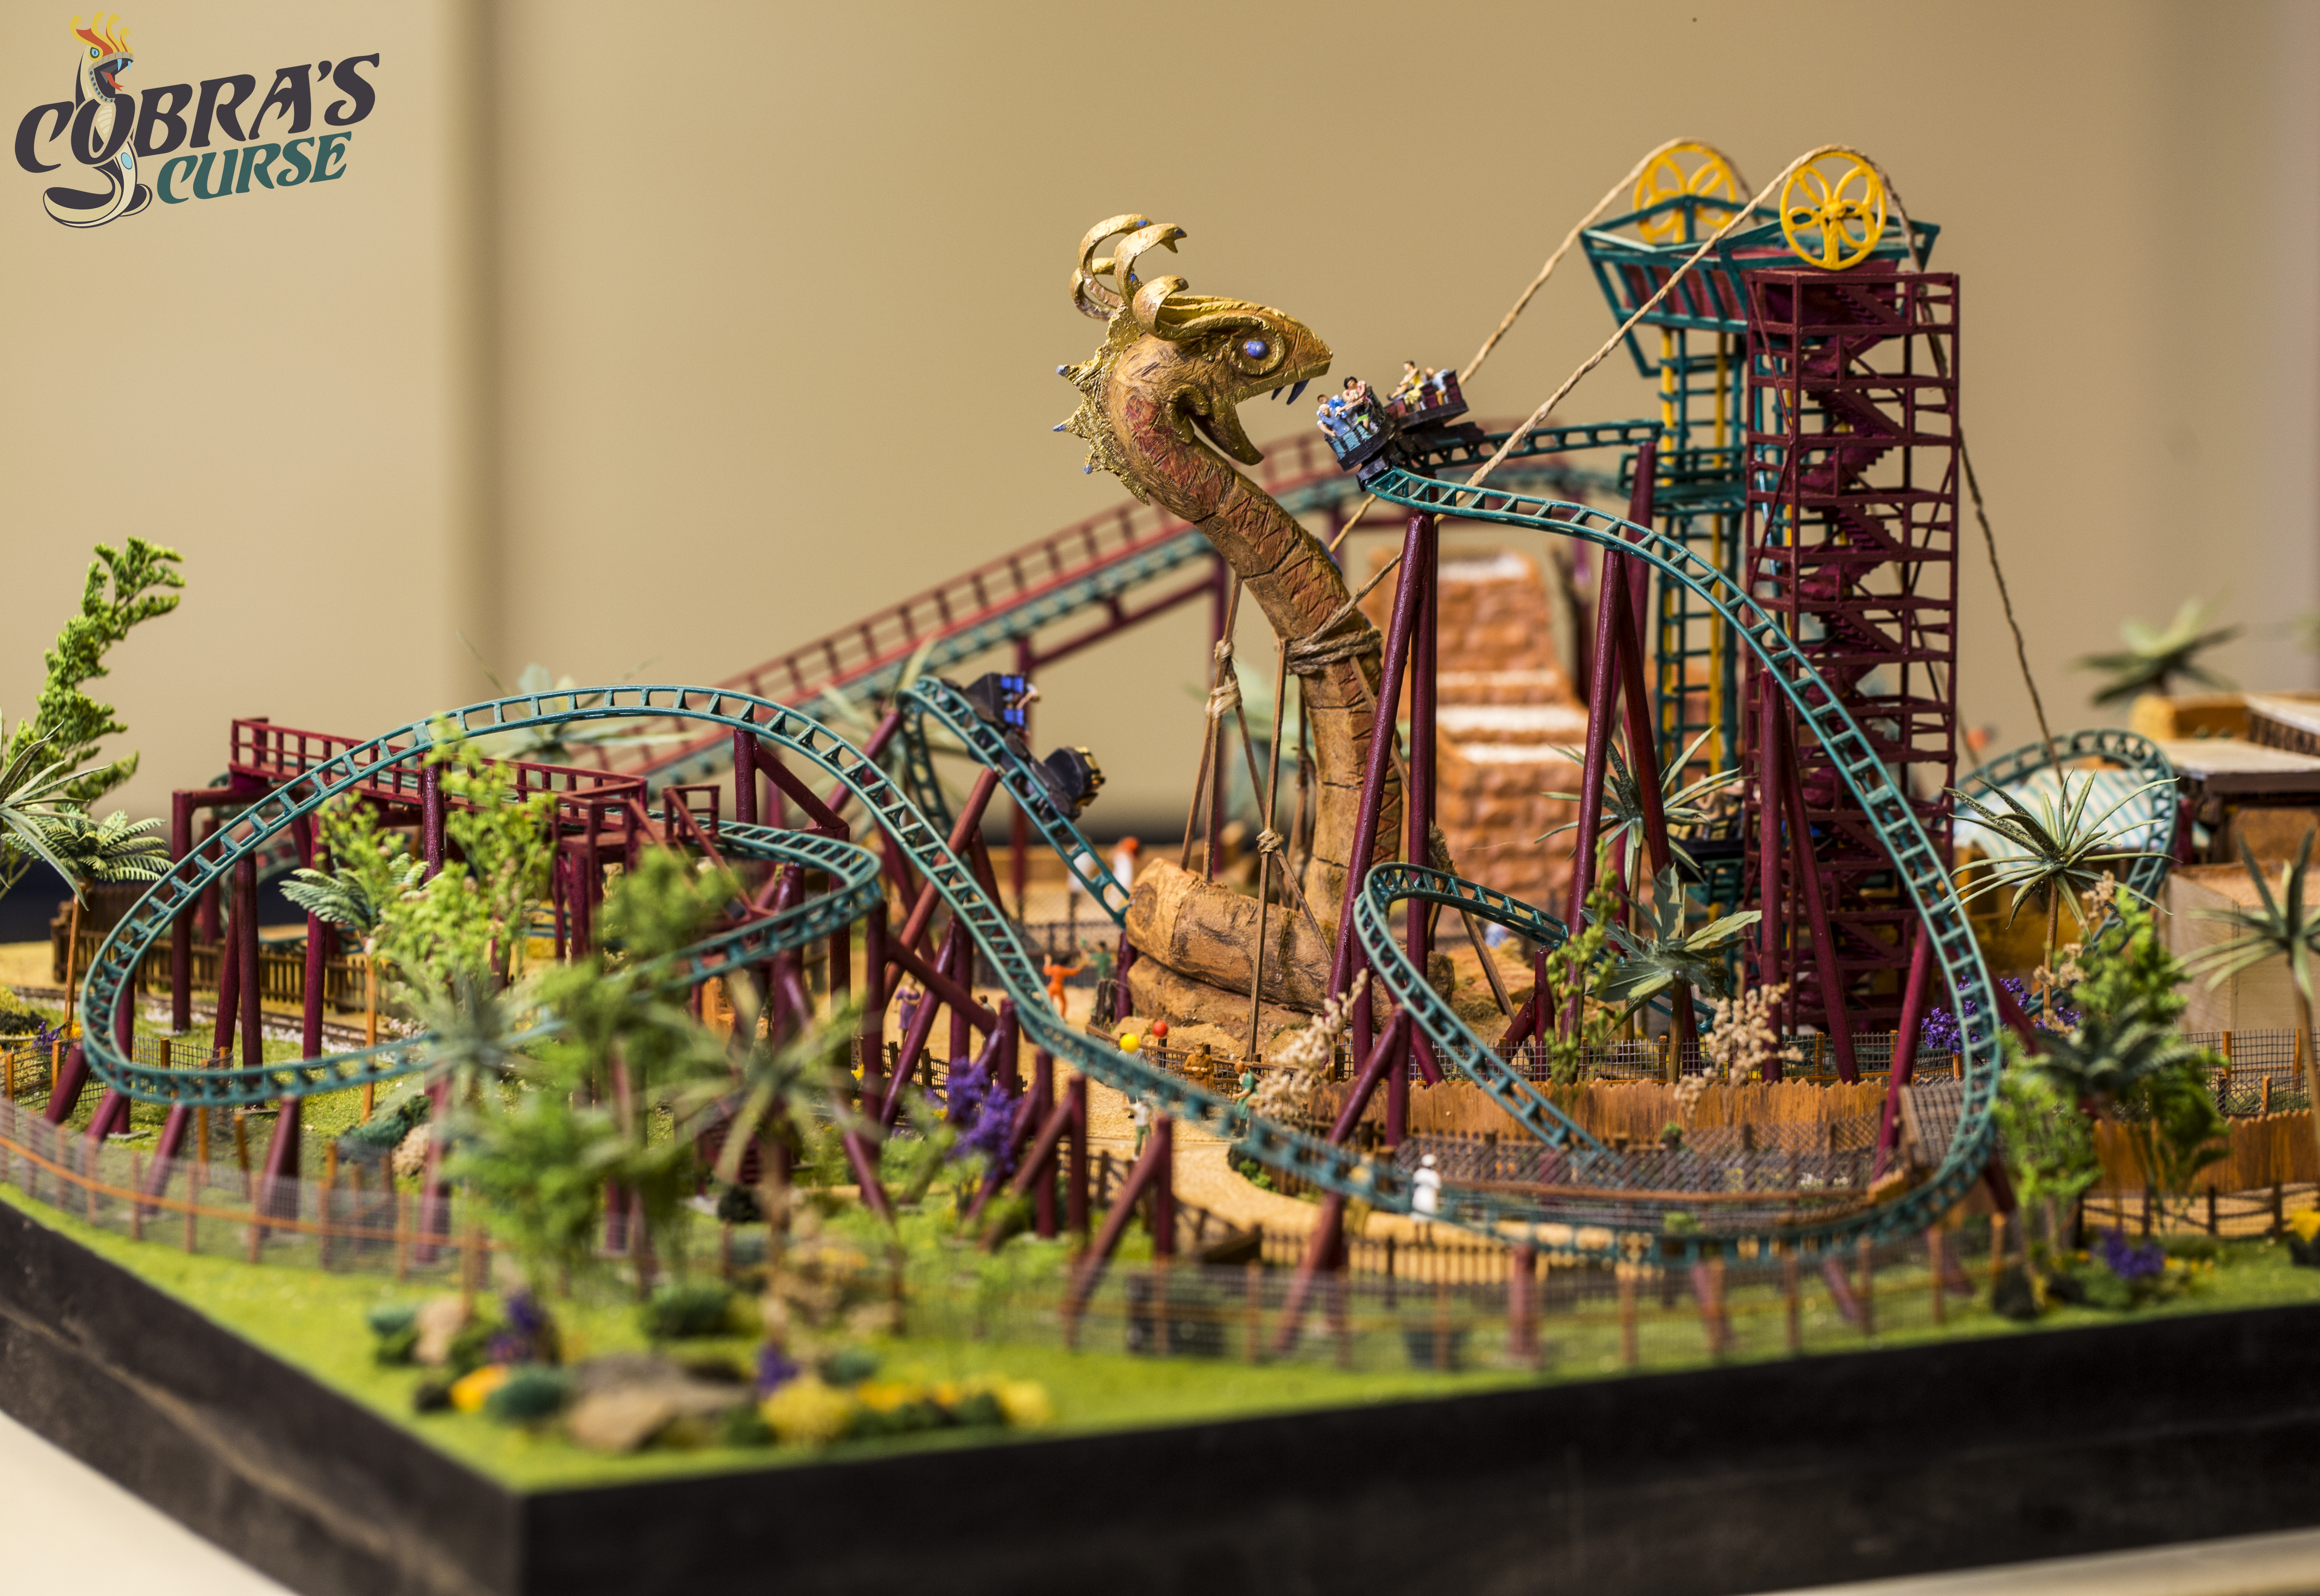 New Cobra\'s Curse Photos + Model Revealed! – Theme Parks and Travels